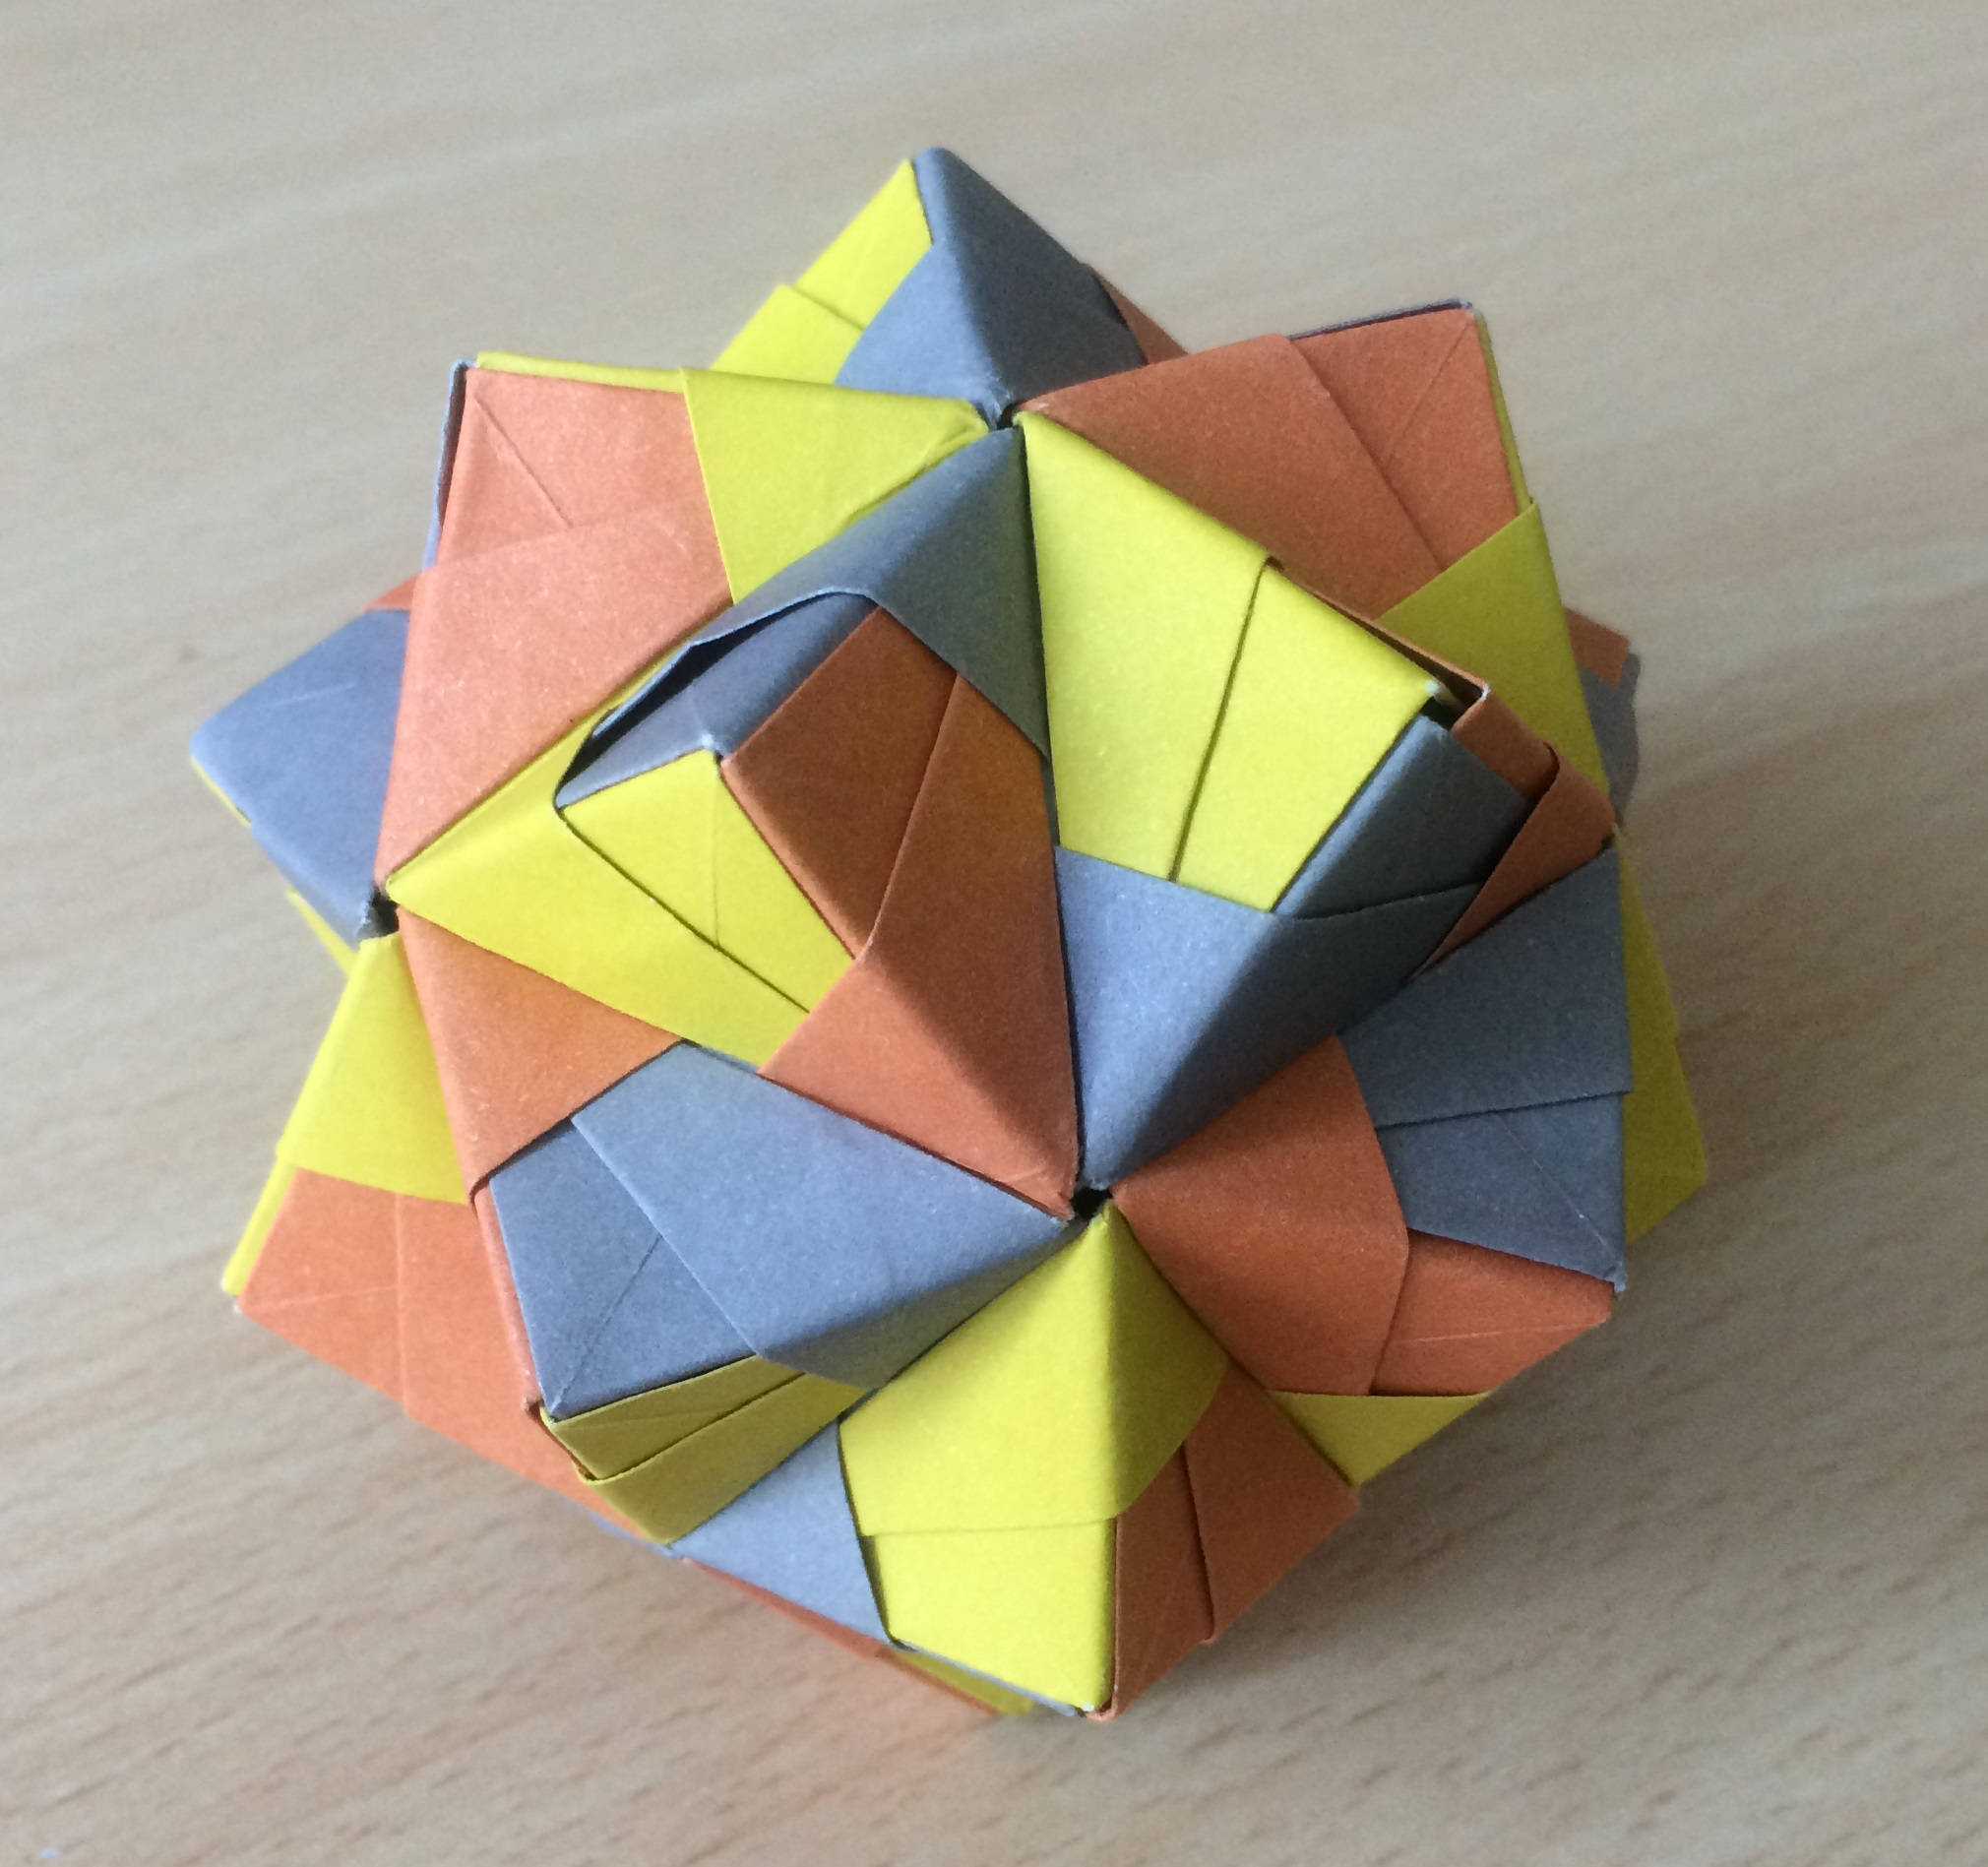 Modular origami polypompholyx cumulated icosahedron sonobe variant cc by sa 30 steve cook jeuxipadfo Gallery